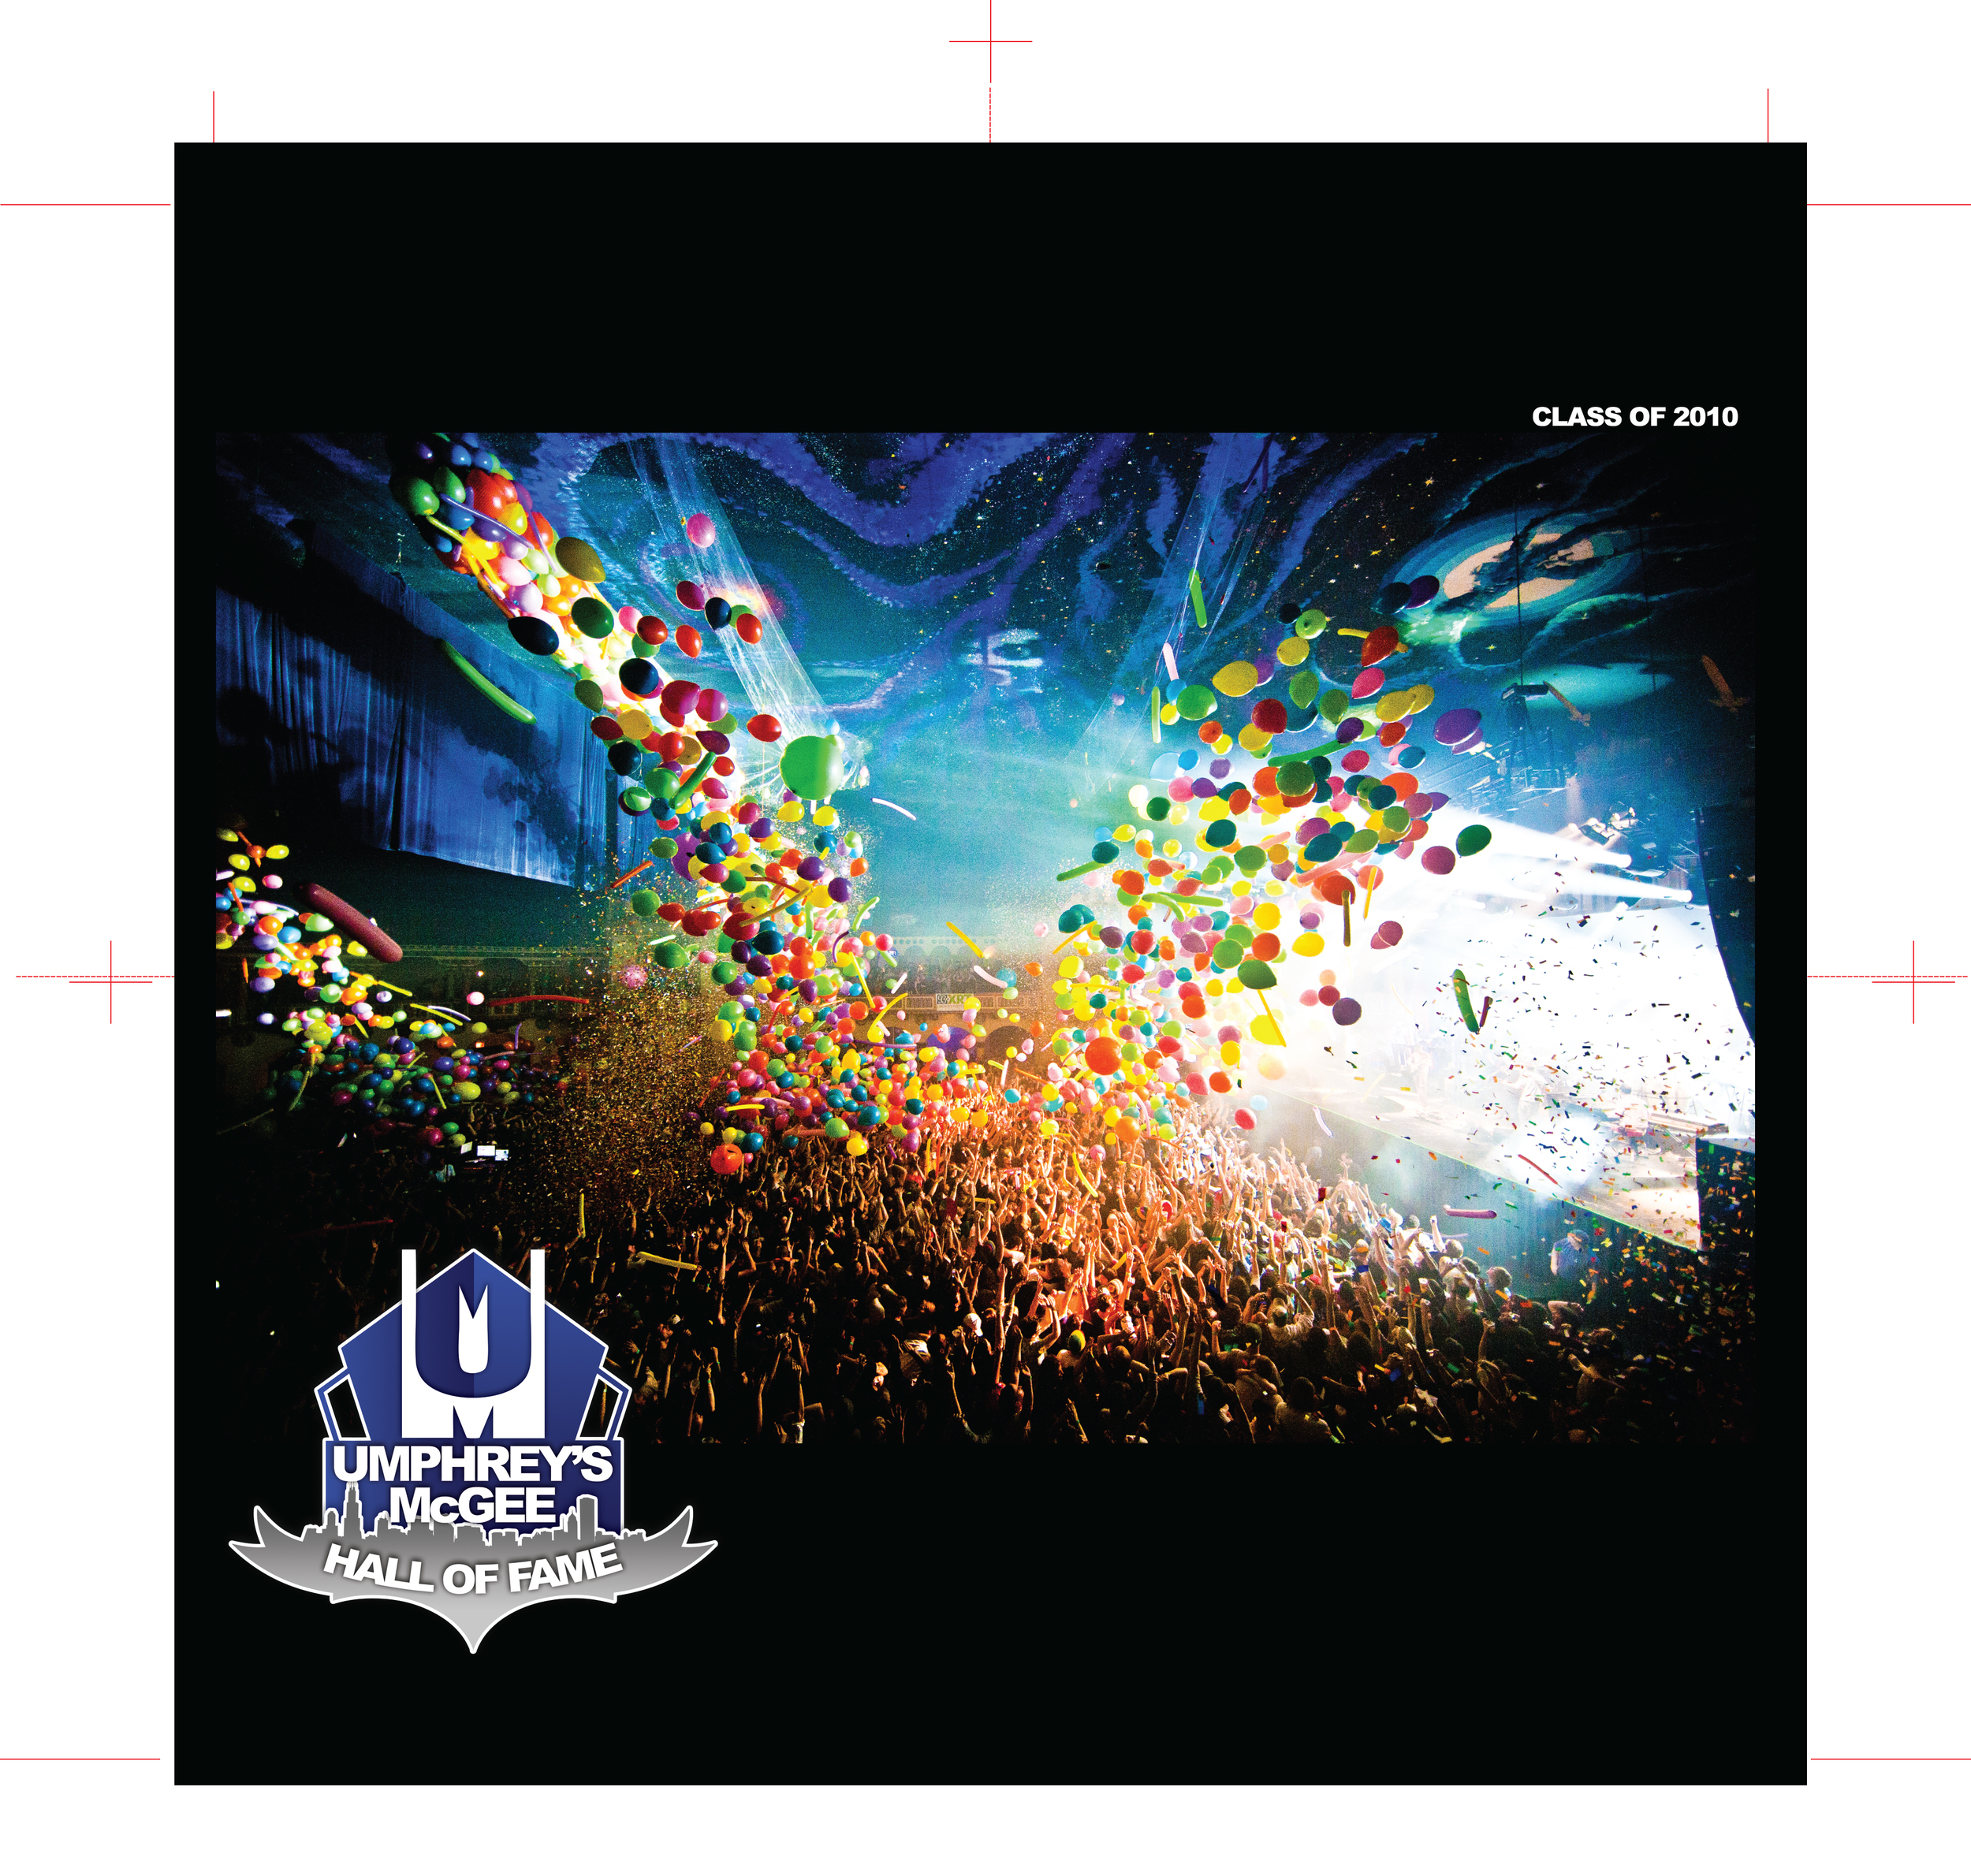 Umphrey's McGee Hall Of Fame: Class of 2011 Insert Front